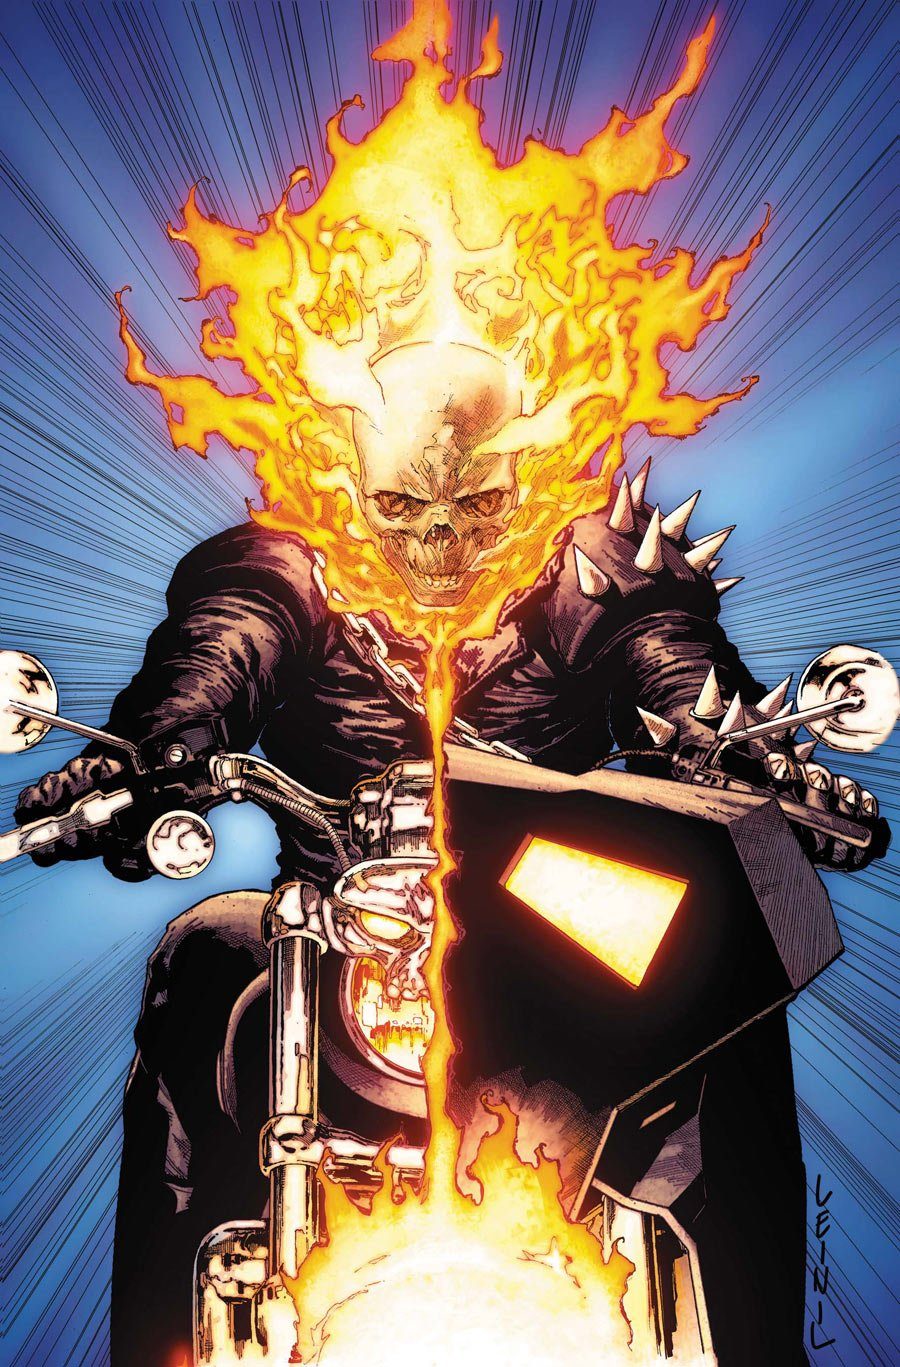 GeekMatic!: Five Things About Ghost Rider: The Spirit Of